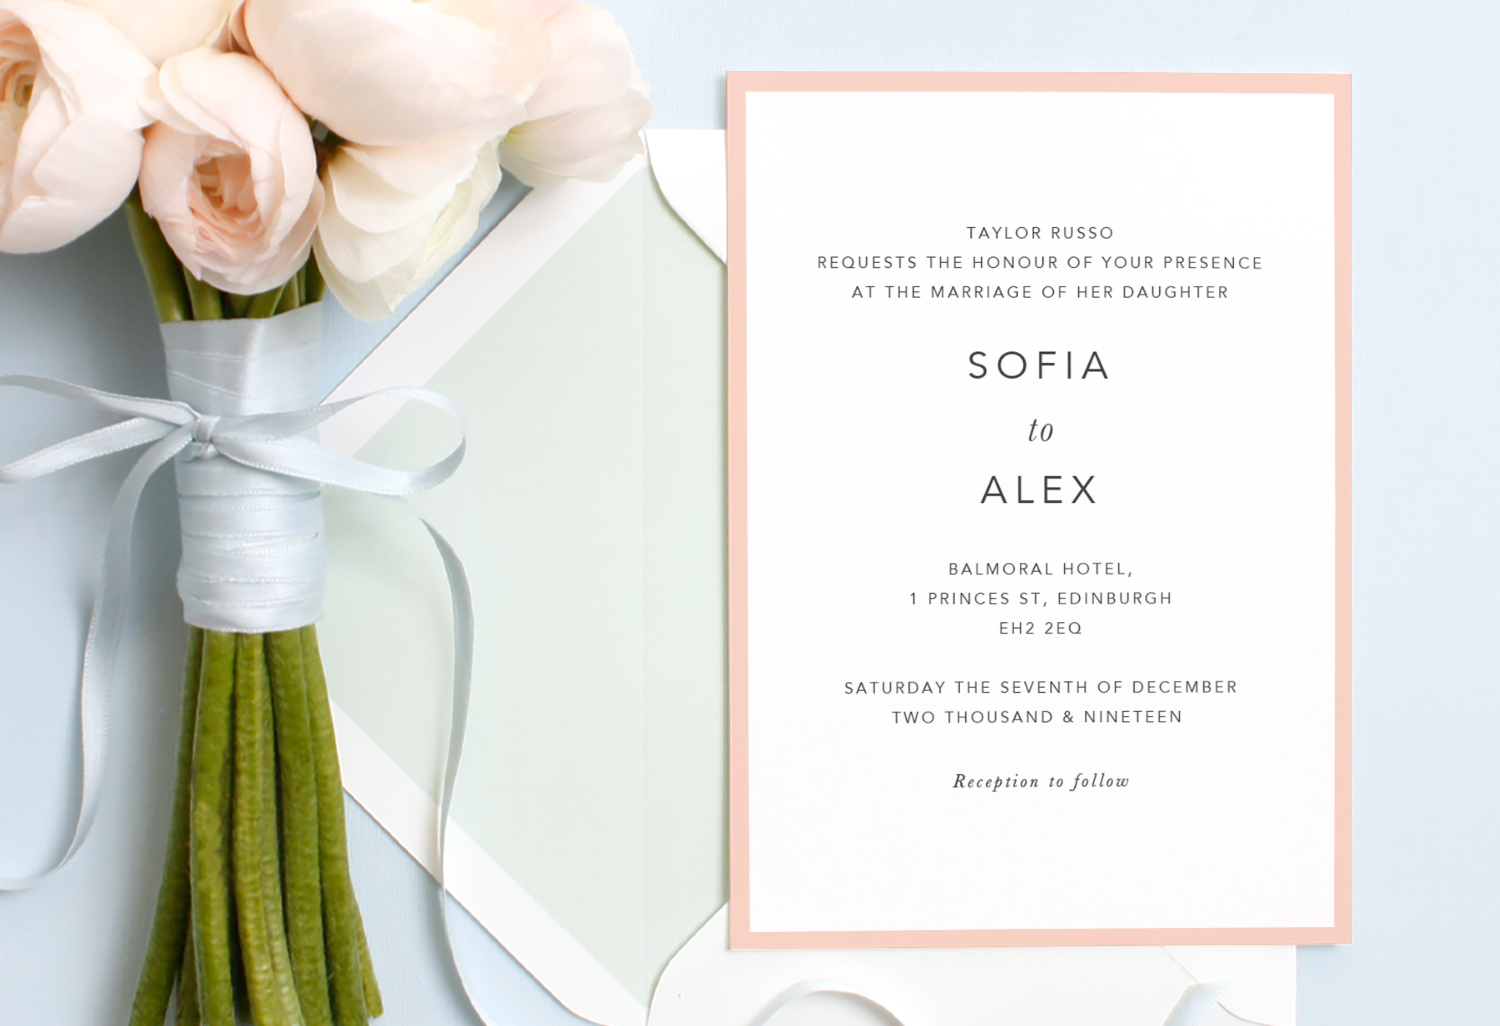 wedding invitation wording when one parent is deceased and you wish not to mention them